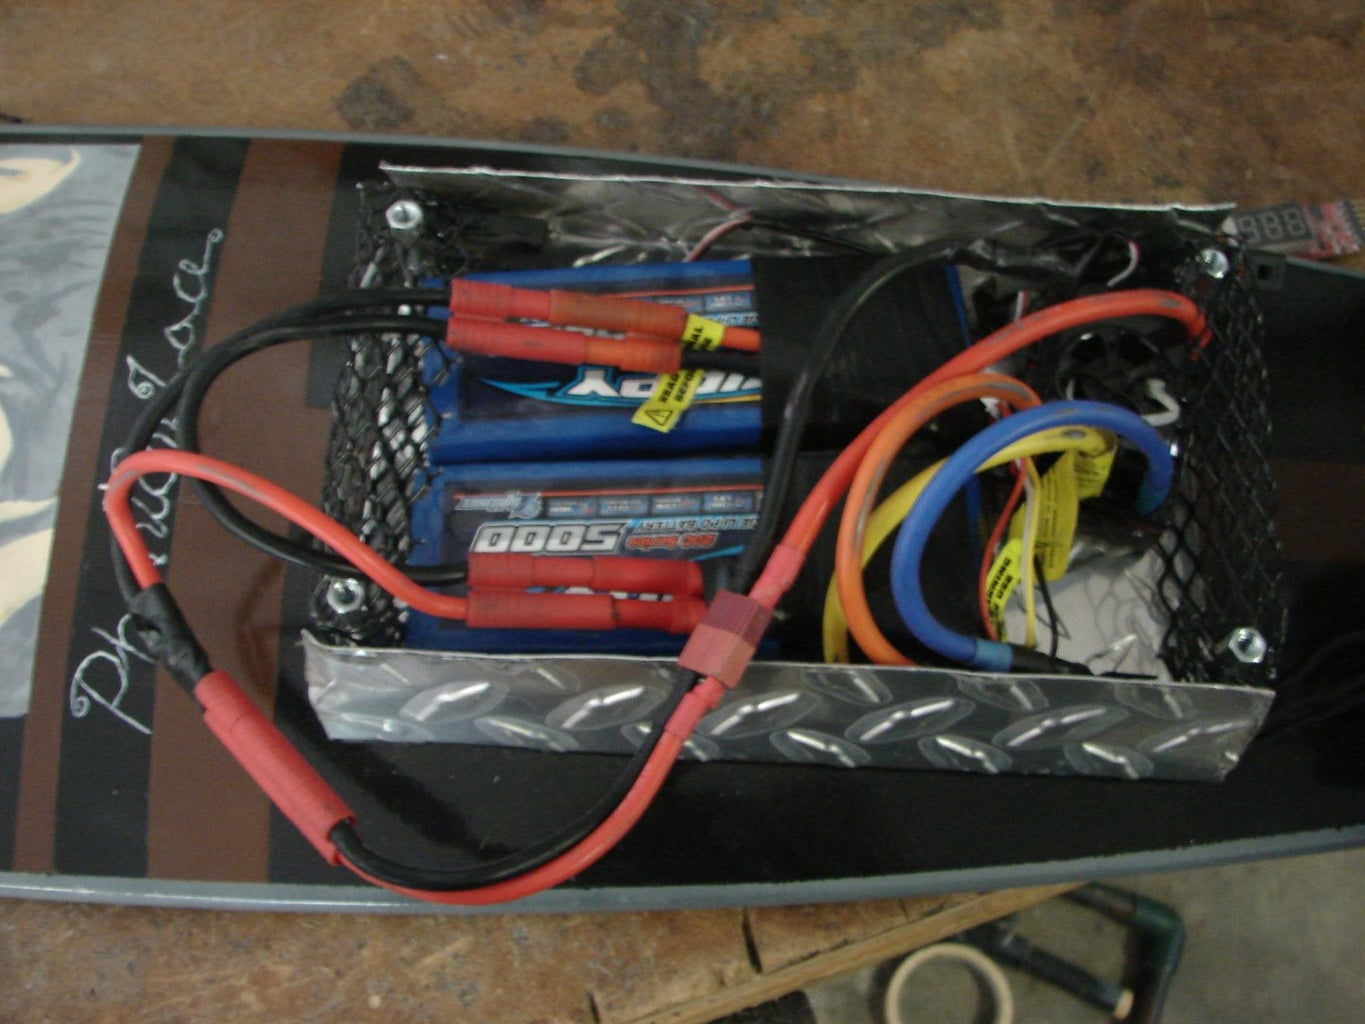 Wiring the Electronics